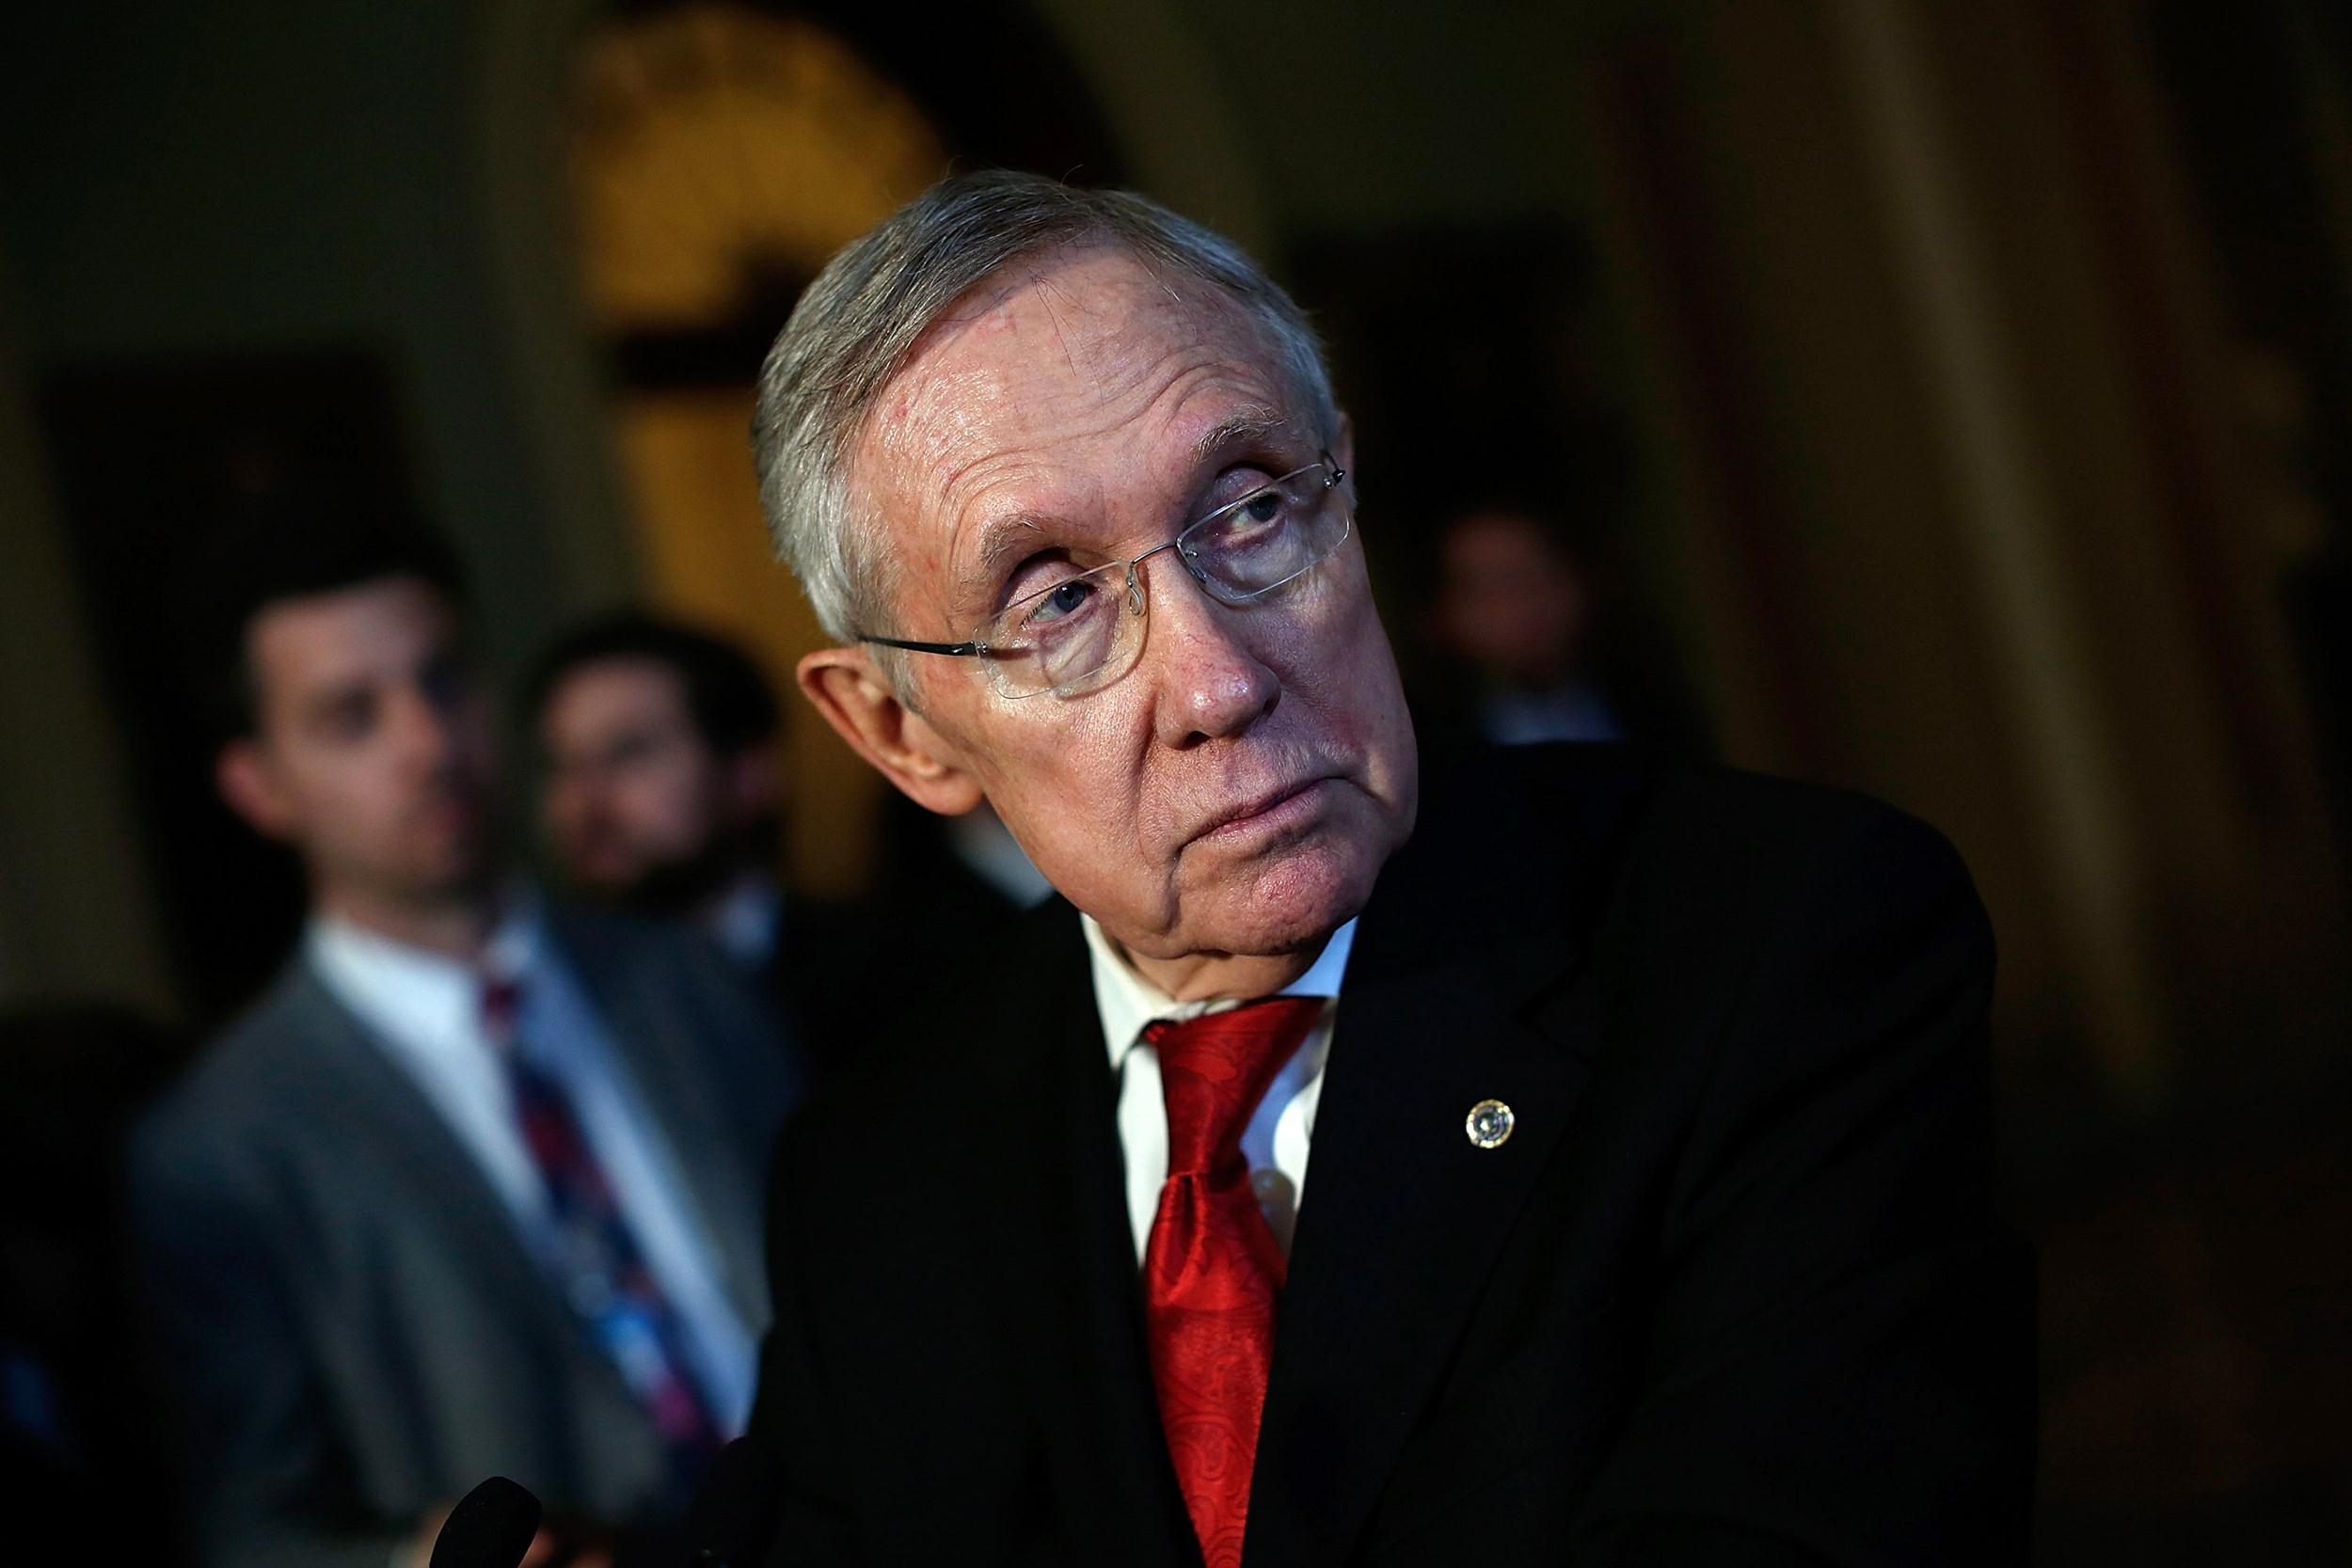 Image: Senate Majority Leader Harry Reid (D-NV)